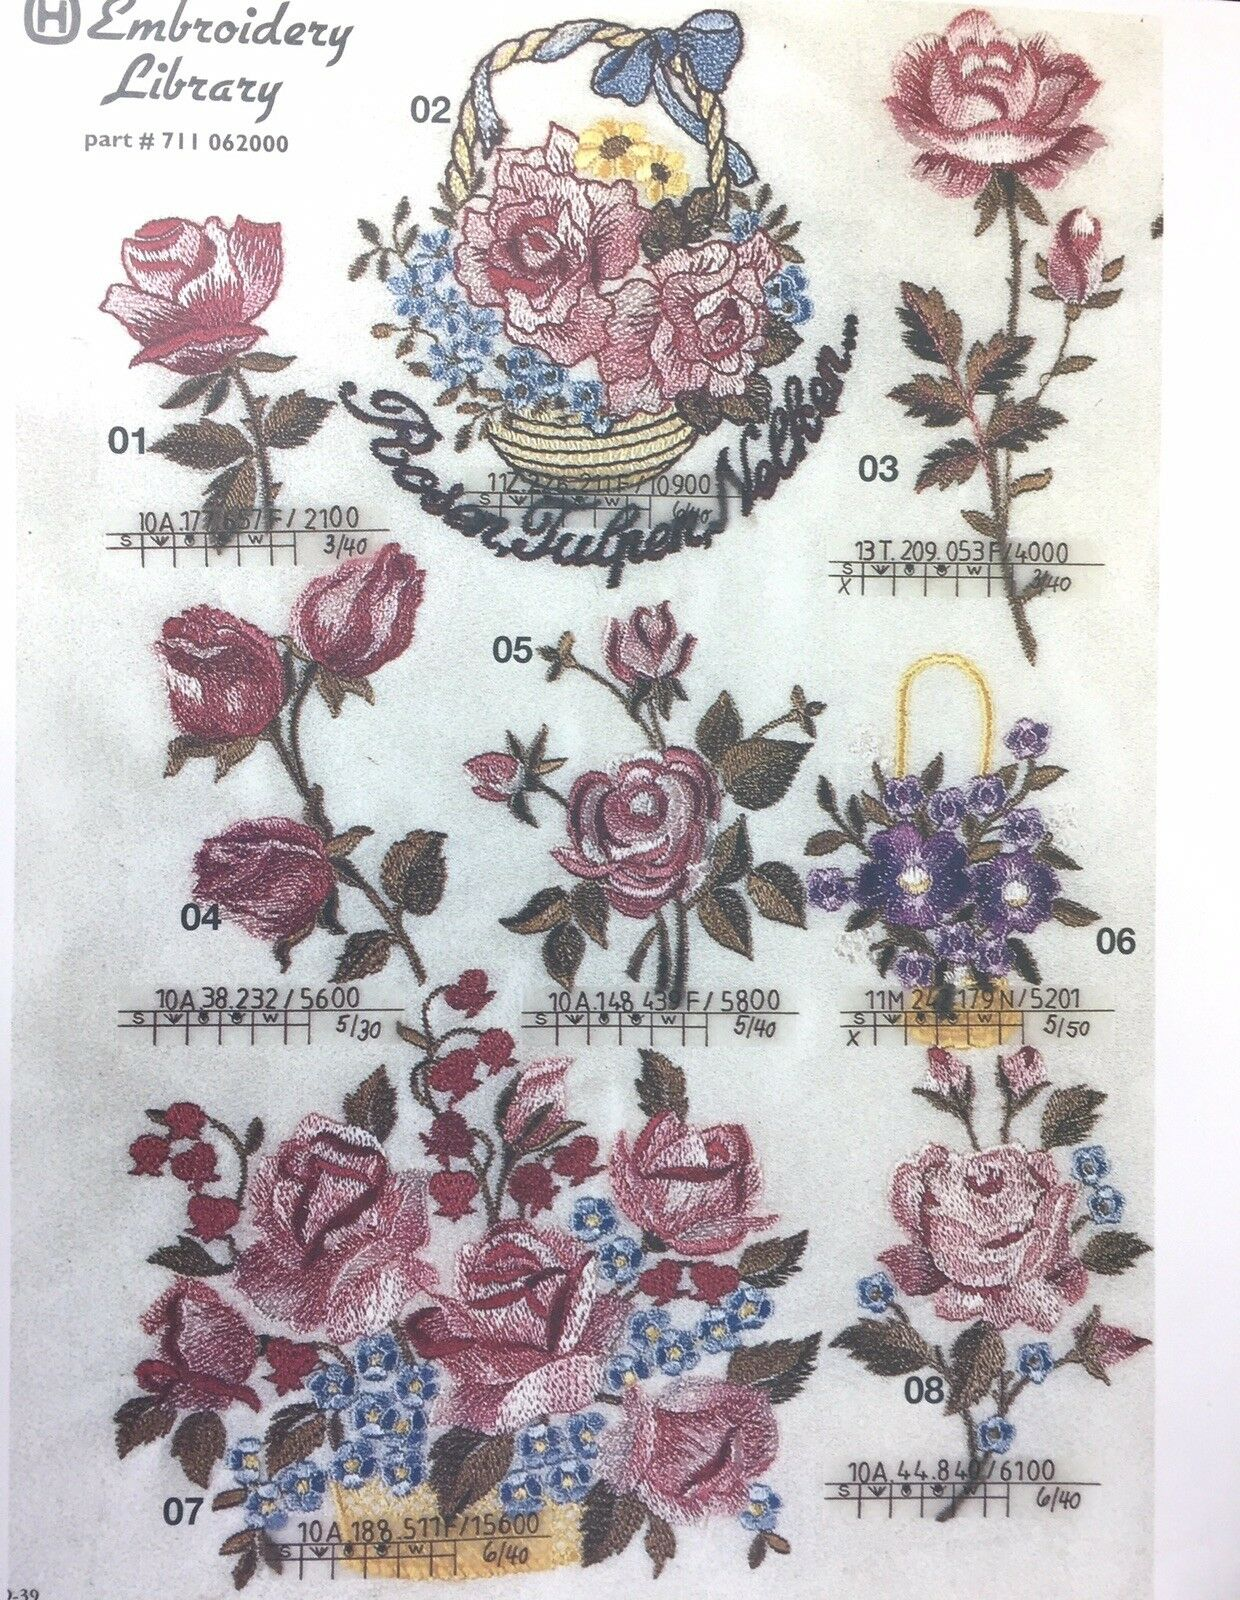 Husqvarna Viking Embroidery Designs Card Roses For Rose Iris Scandinavia 1 For Sale Online